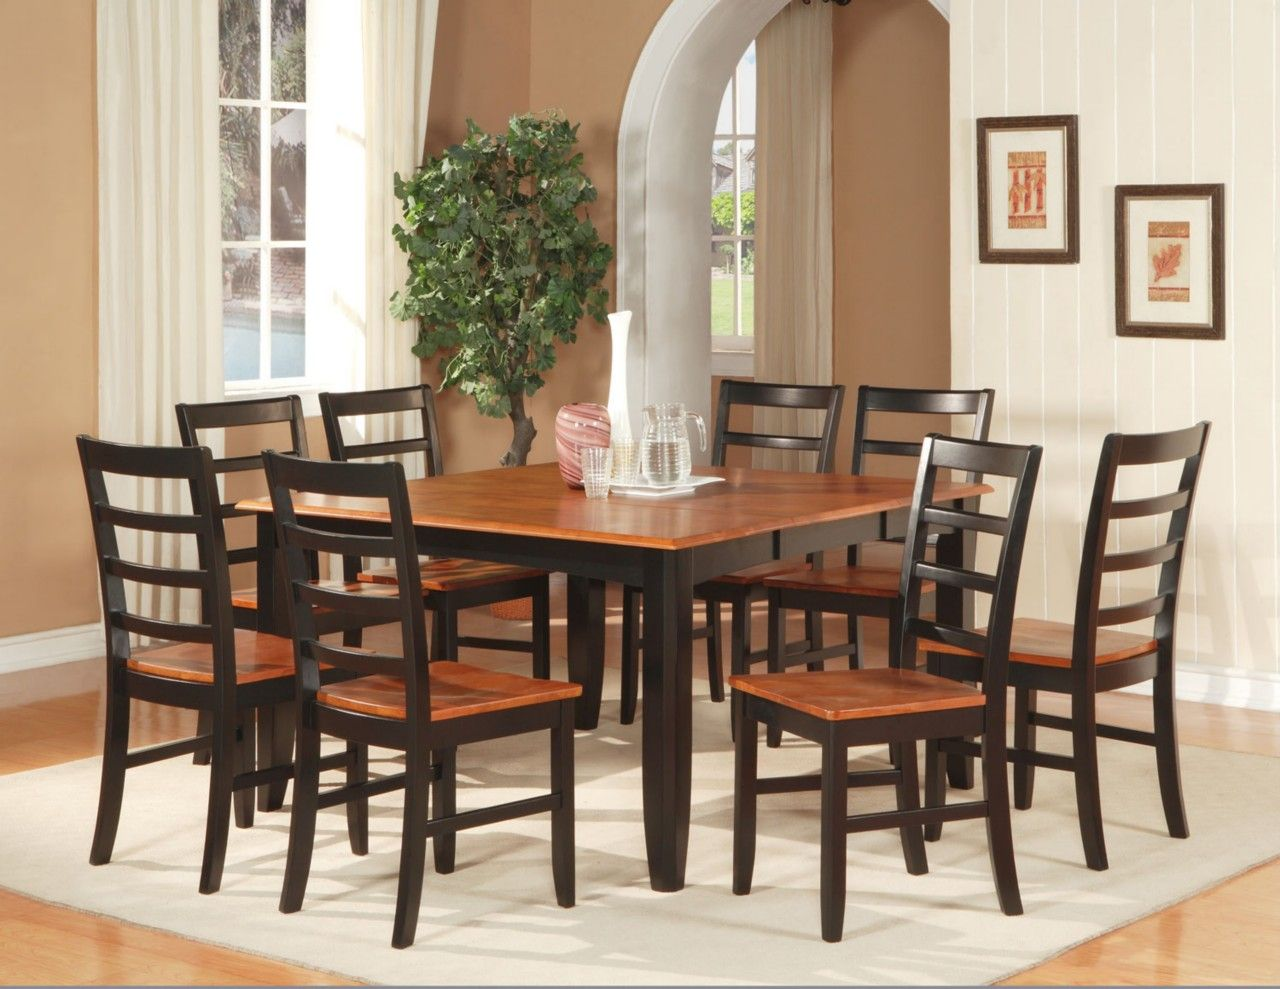 Dining Room Tables Valuable Information To Get To Know More   Dining Room  Table Chair